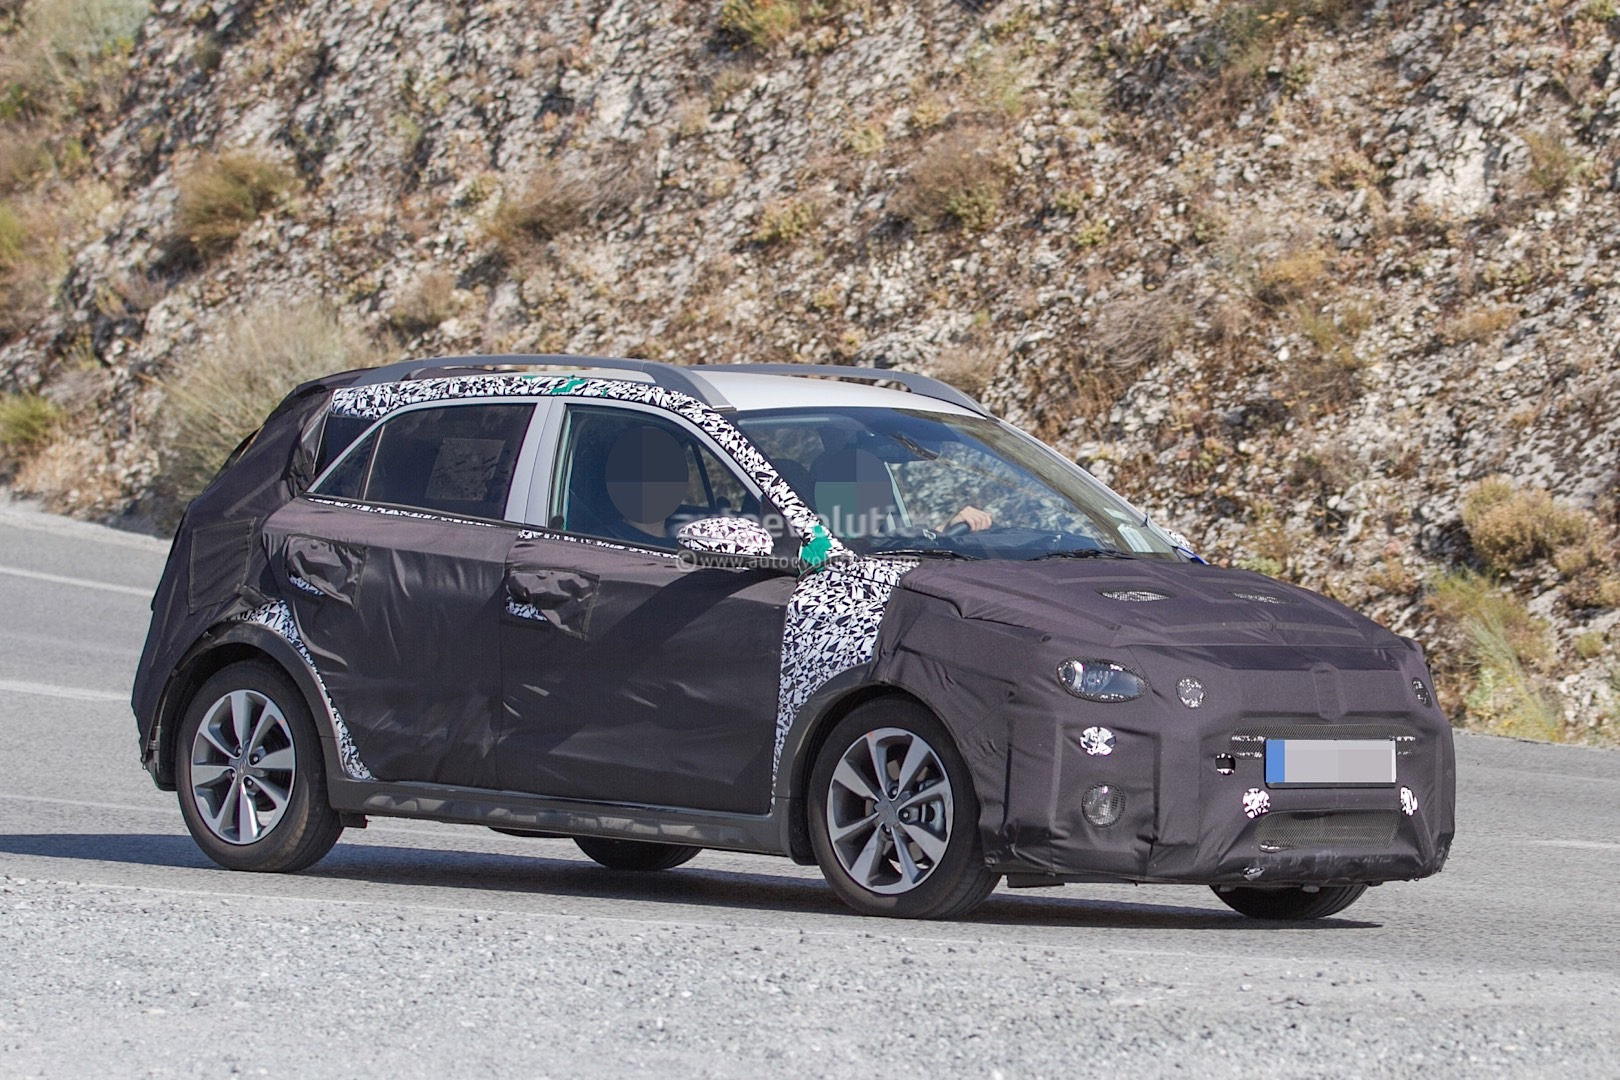 hyundai i20 cross test mule spotted in southern europe might go global autoevolution. Black Bedroom Furniture Sets. Home Design Ideas